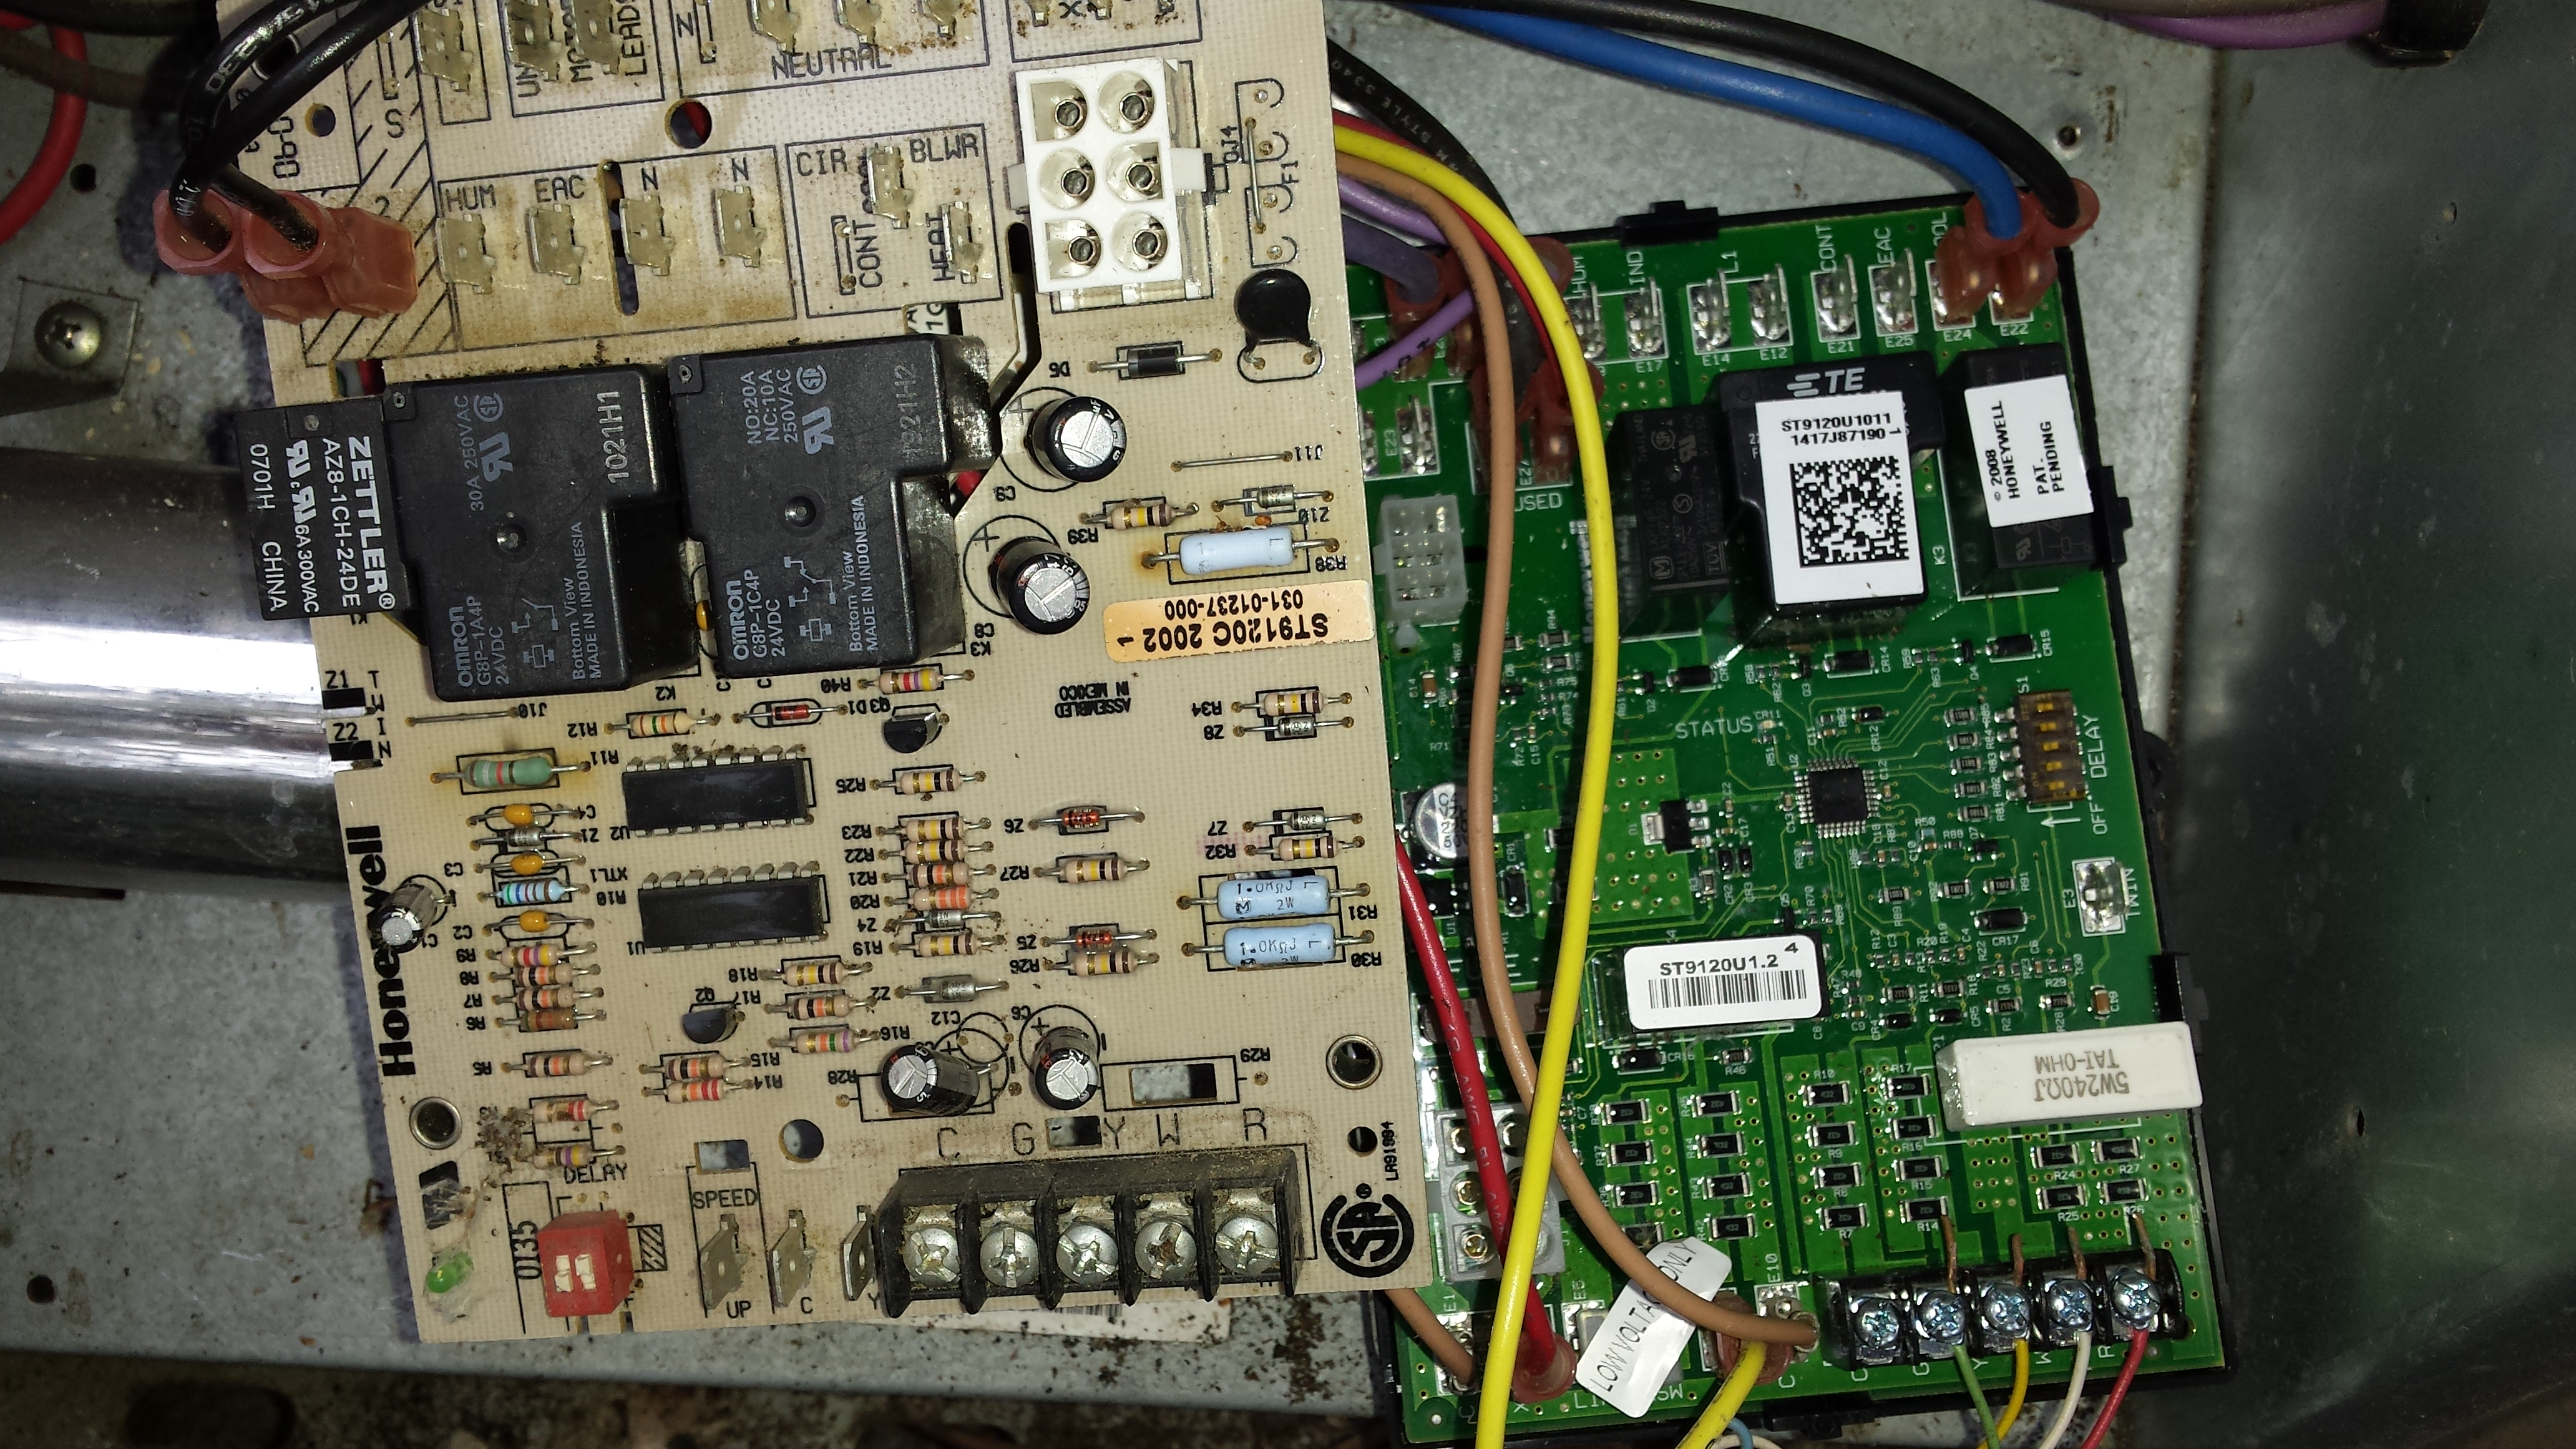 I Am Replacing A Havac Controller Where Do The S1 And S2 Wiresboth Totaline Thermostat P274 Wiring Diagram 20151121 154223